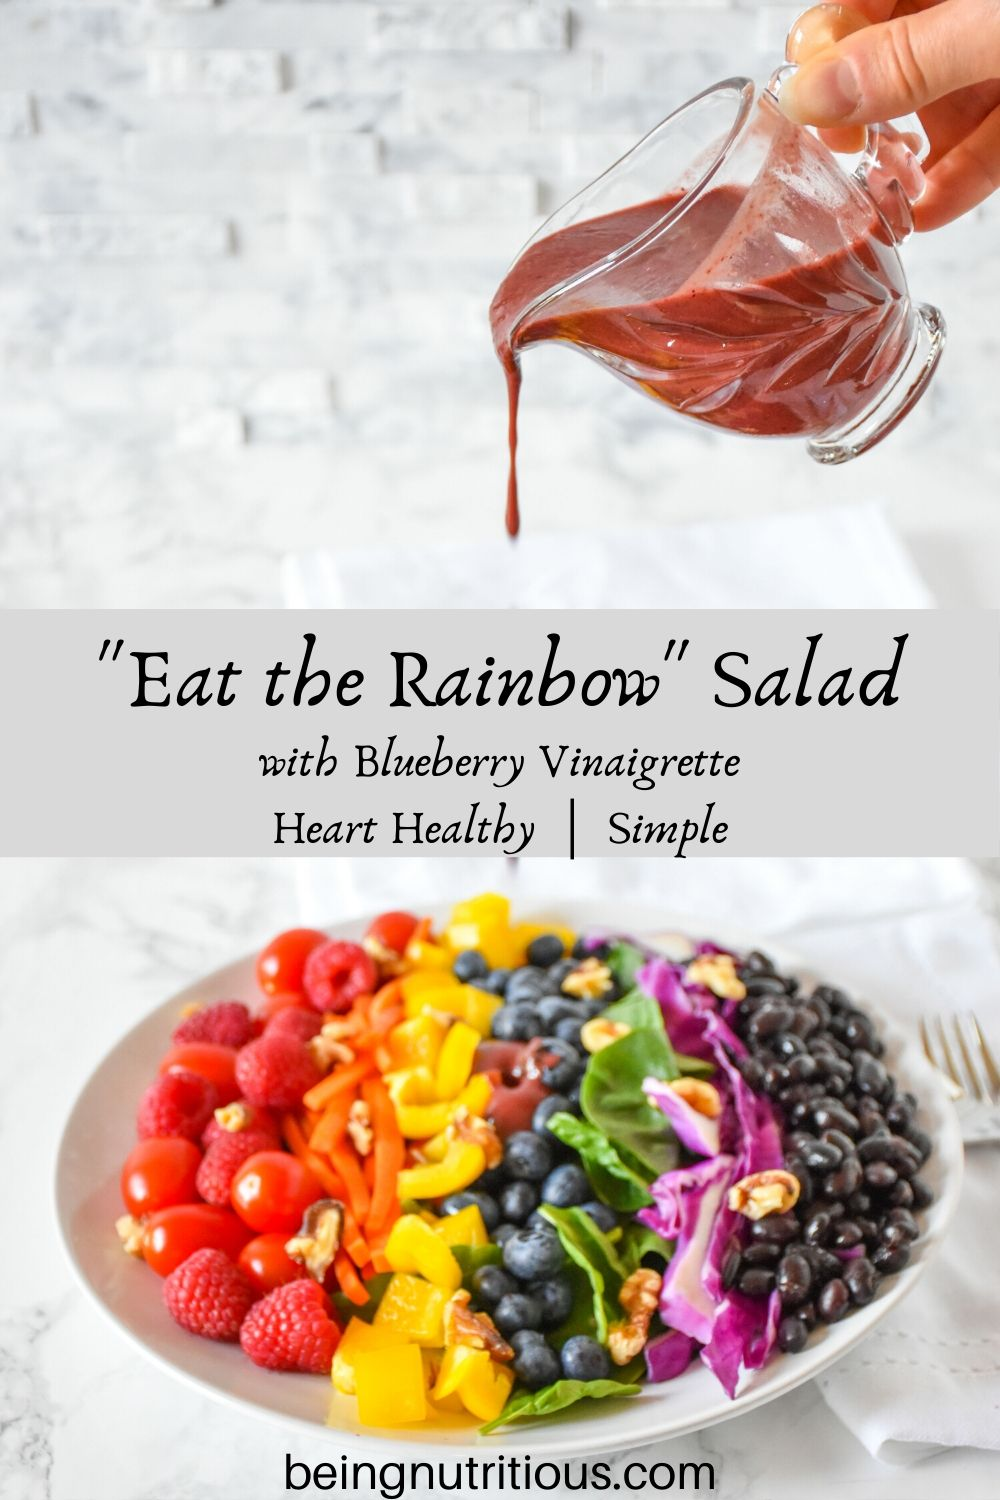 Stacked image. Top image is glass vessel containing blueberry vinaigrette, being poured. Bottom image is rainbow salad on a plate, ingredients arranged by color.